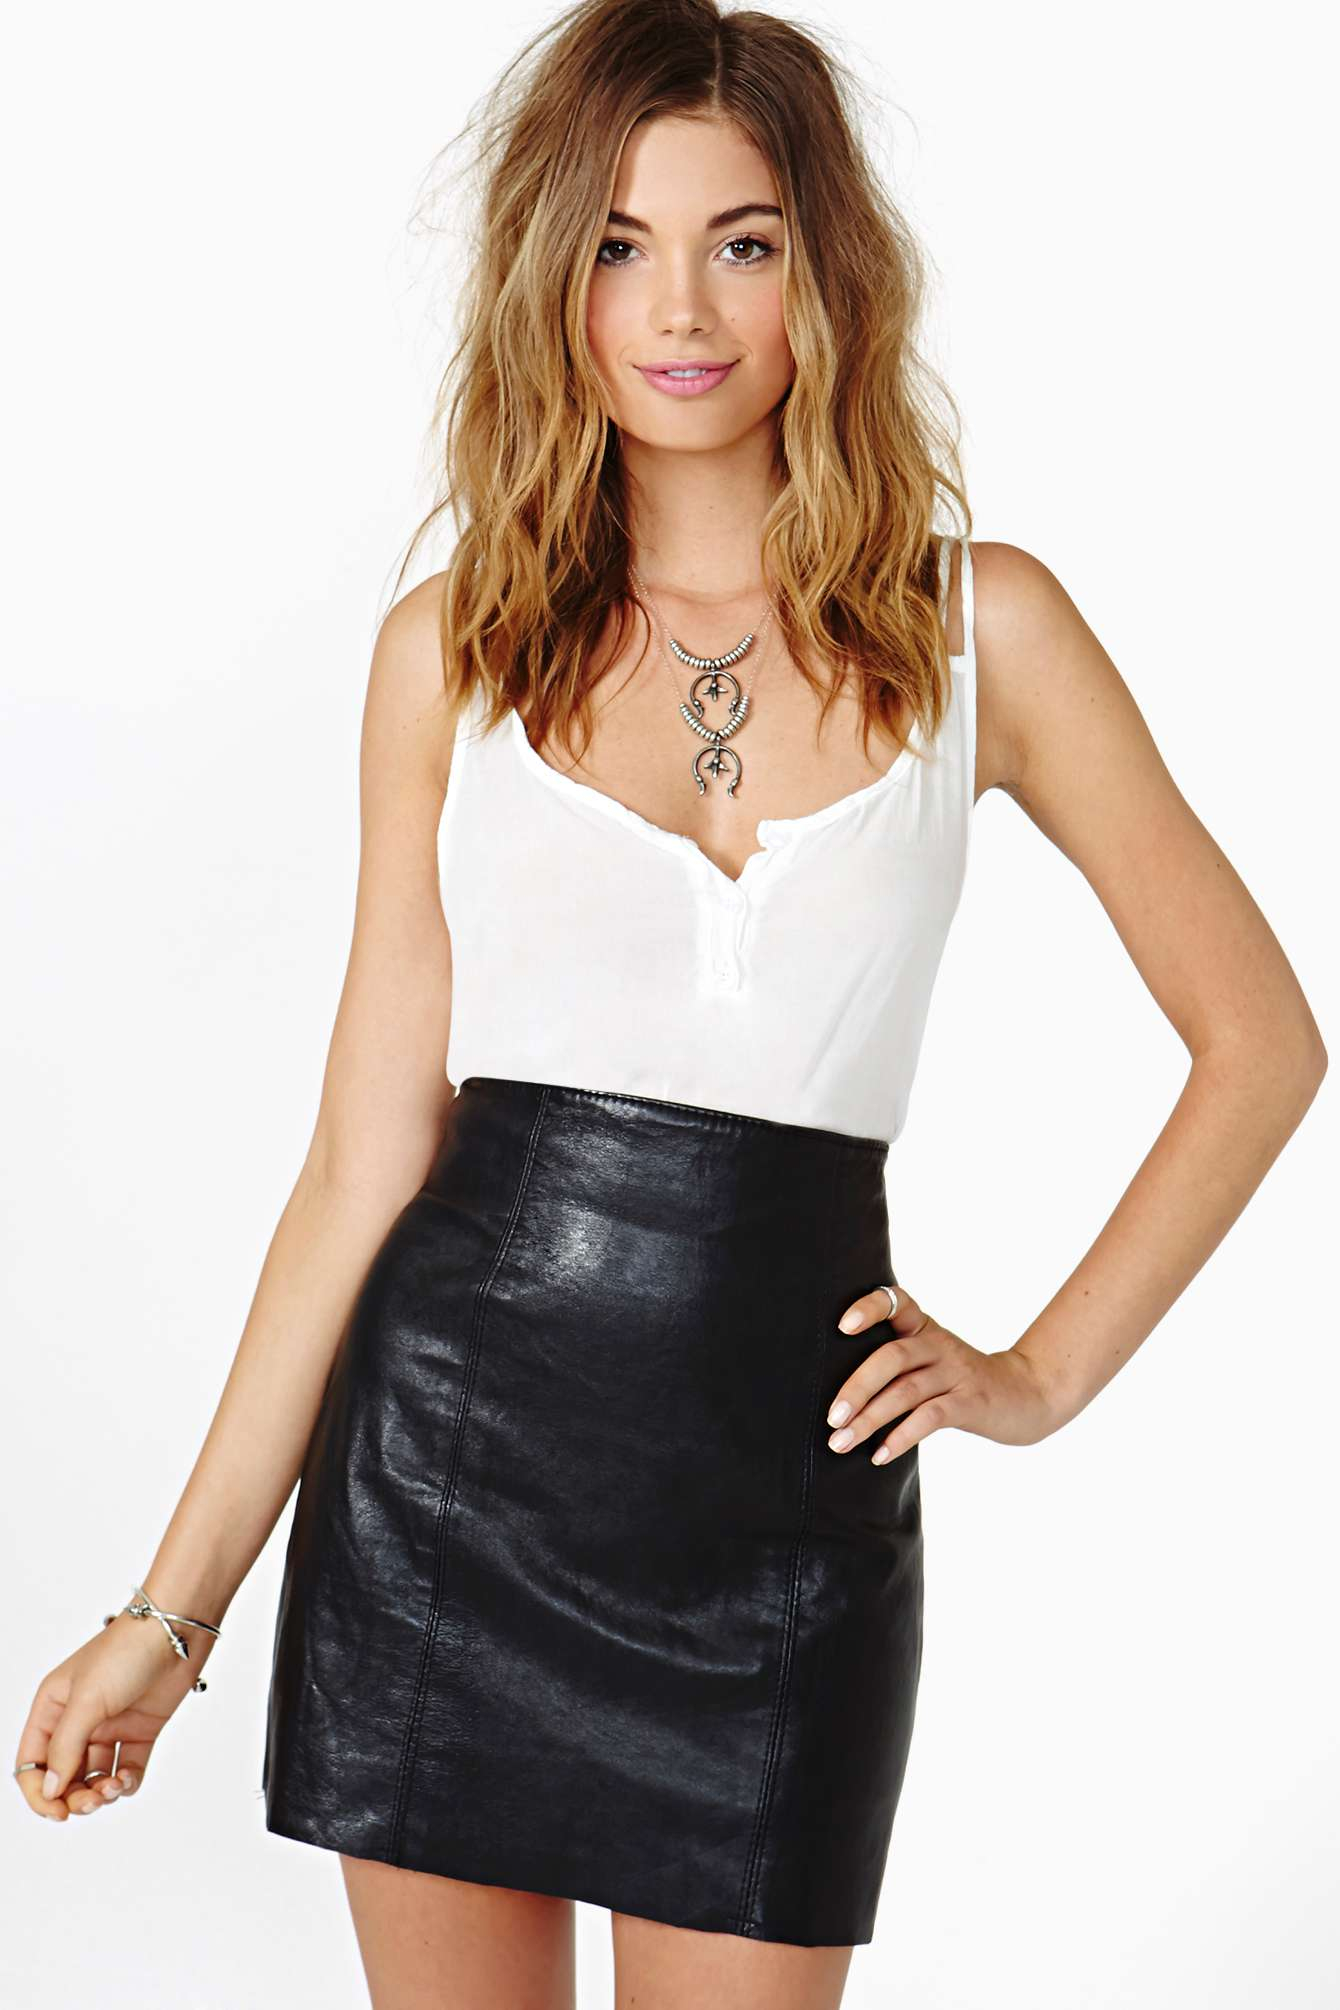 Nasty gal After Party Vintage Night Ride Leather Skirt in Black | Lyst